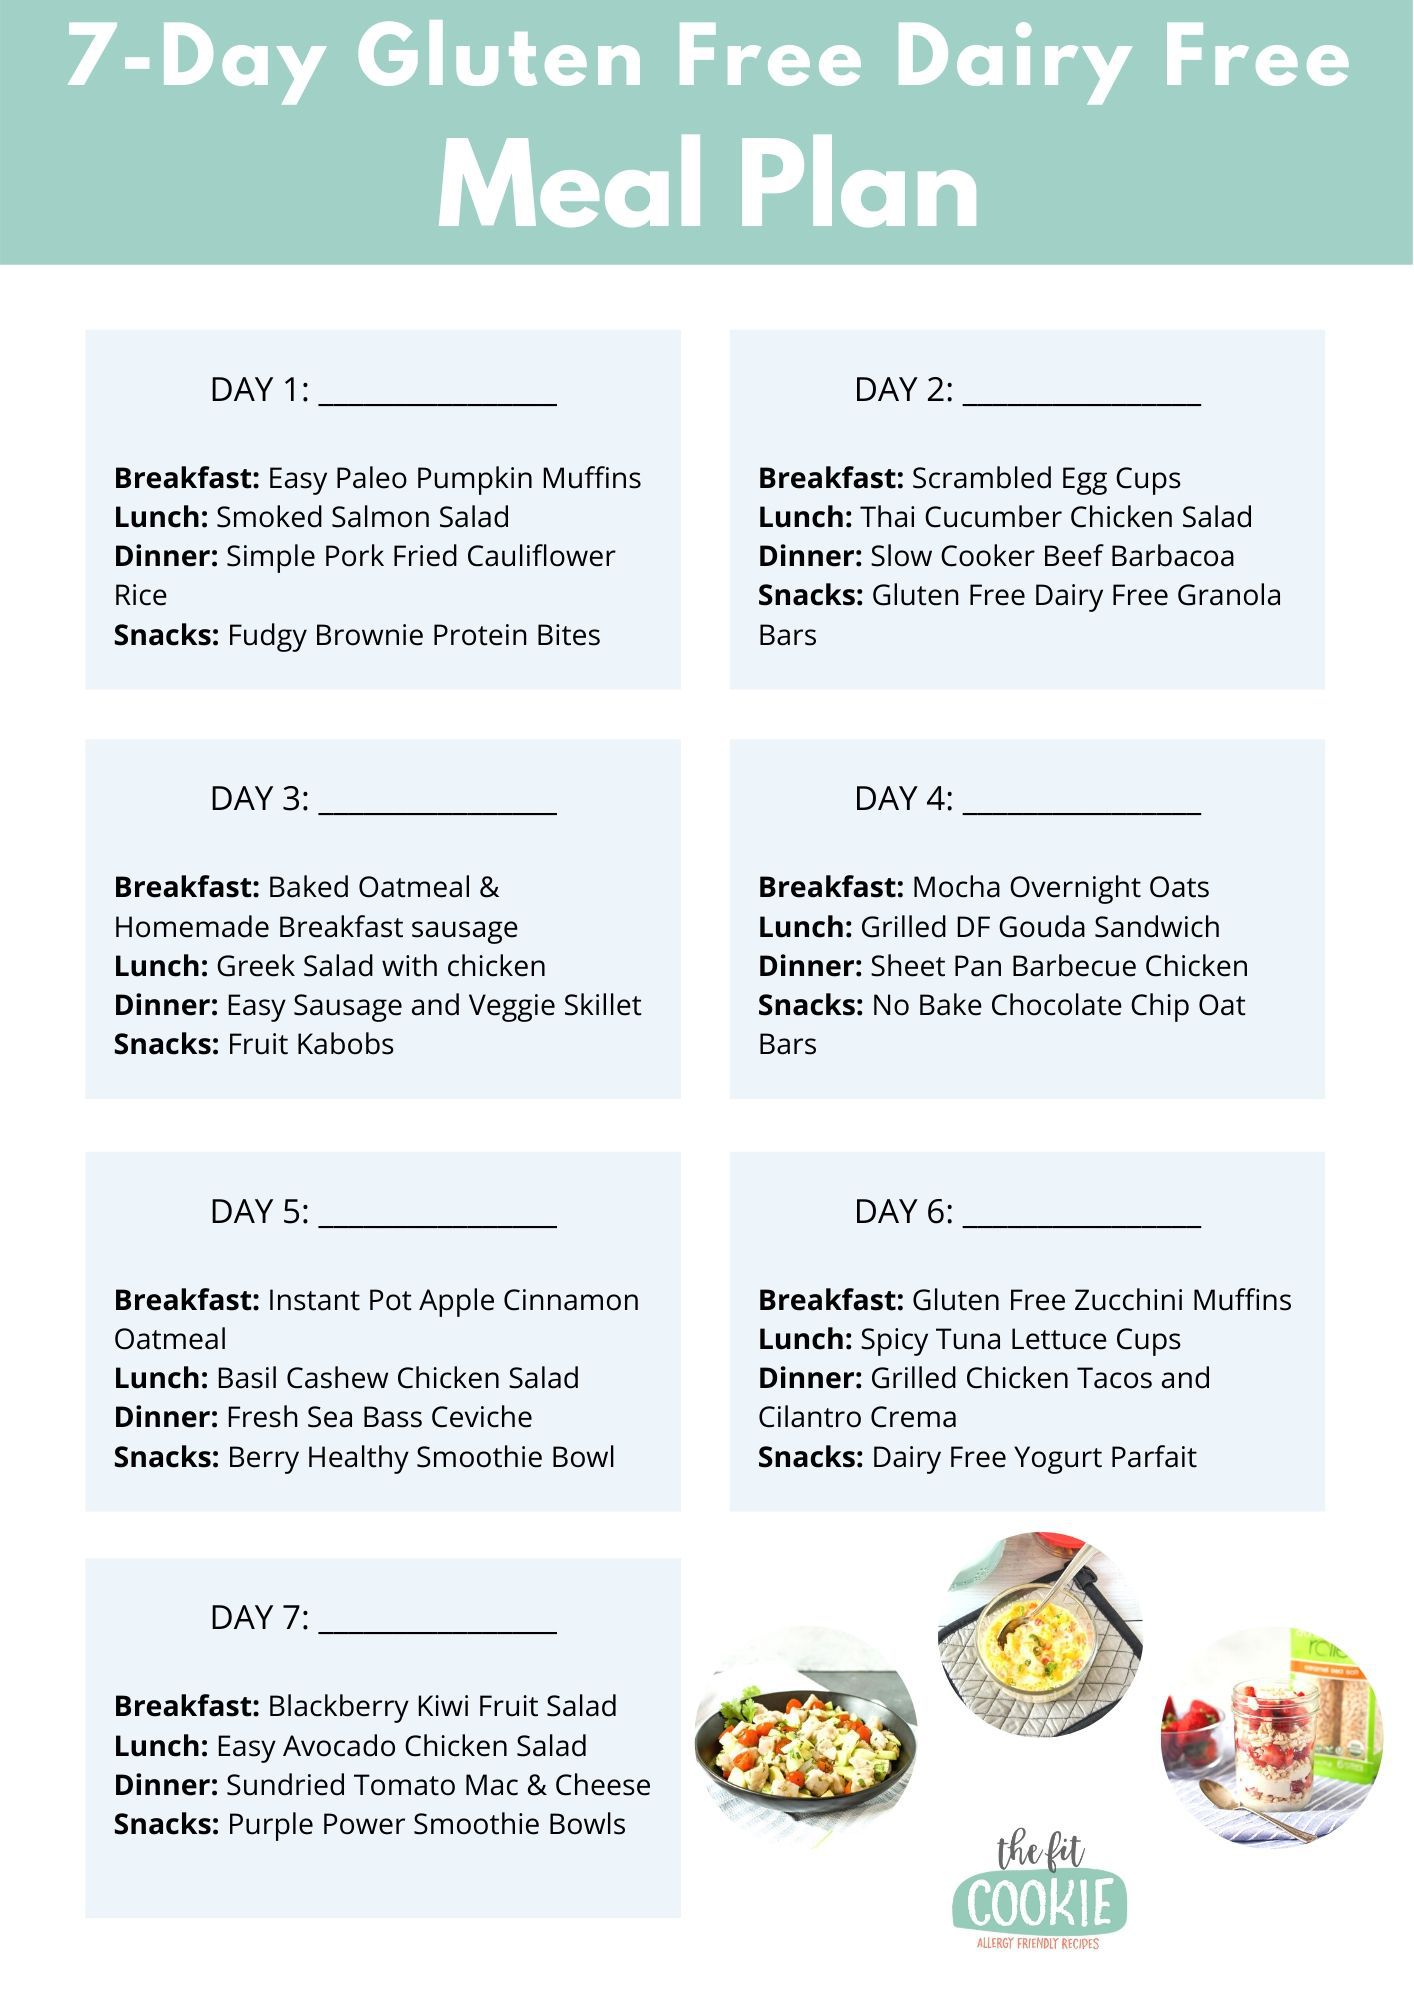 7-day gluten free dairy free meal plan sheet